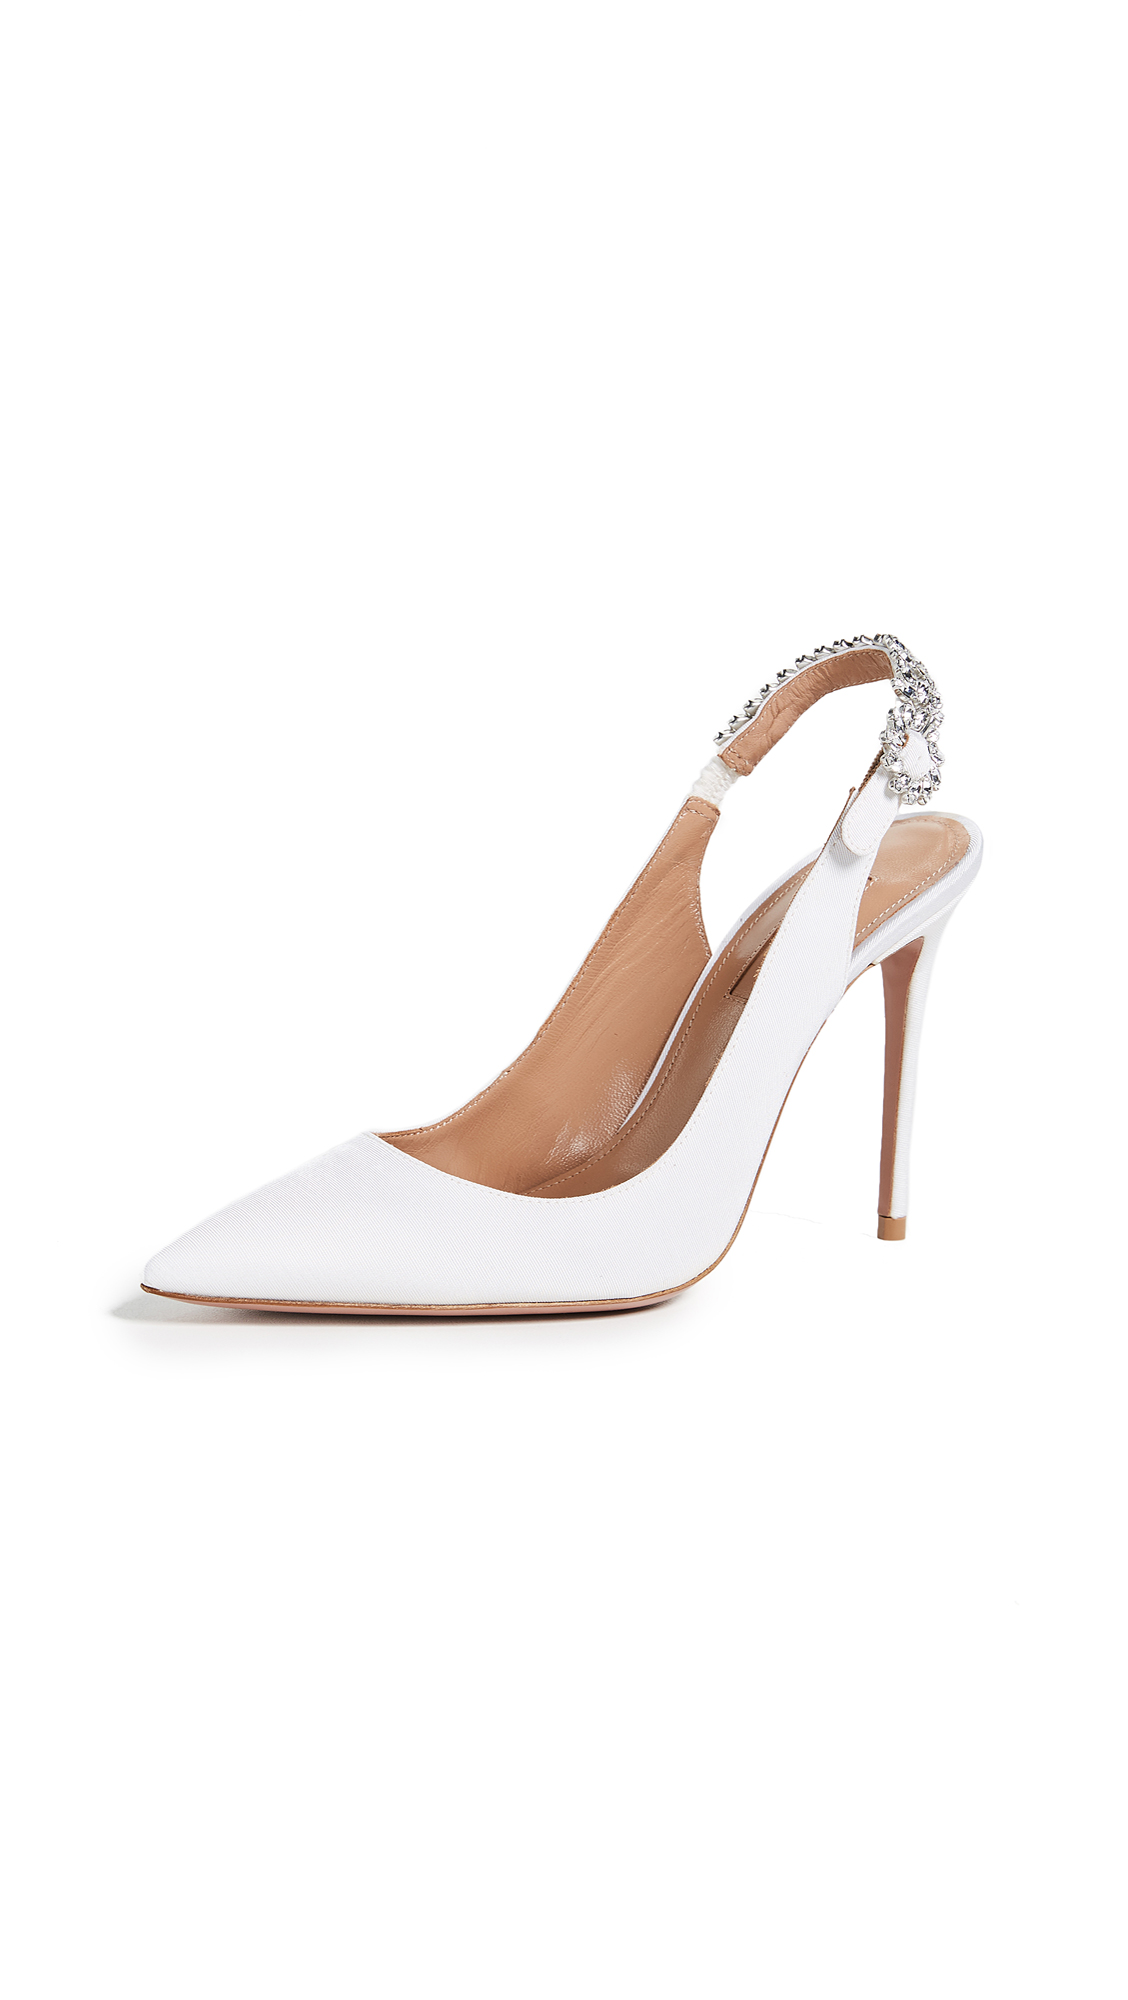 Aquazzura Portrait Of Lady 105 Slingback Pumps - White